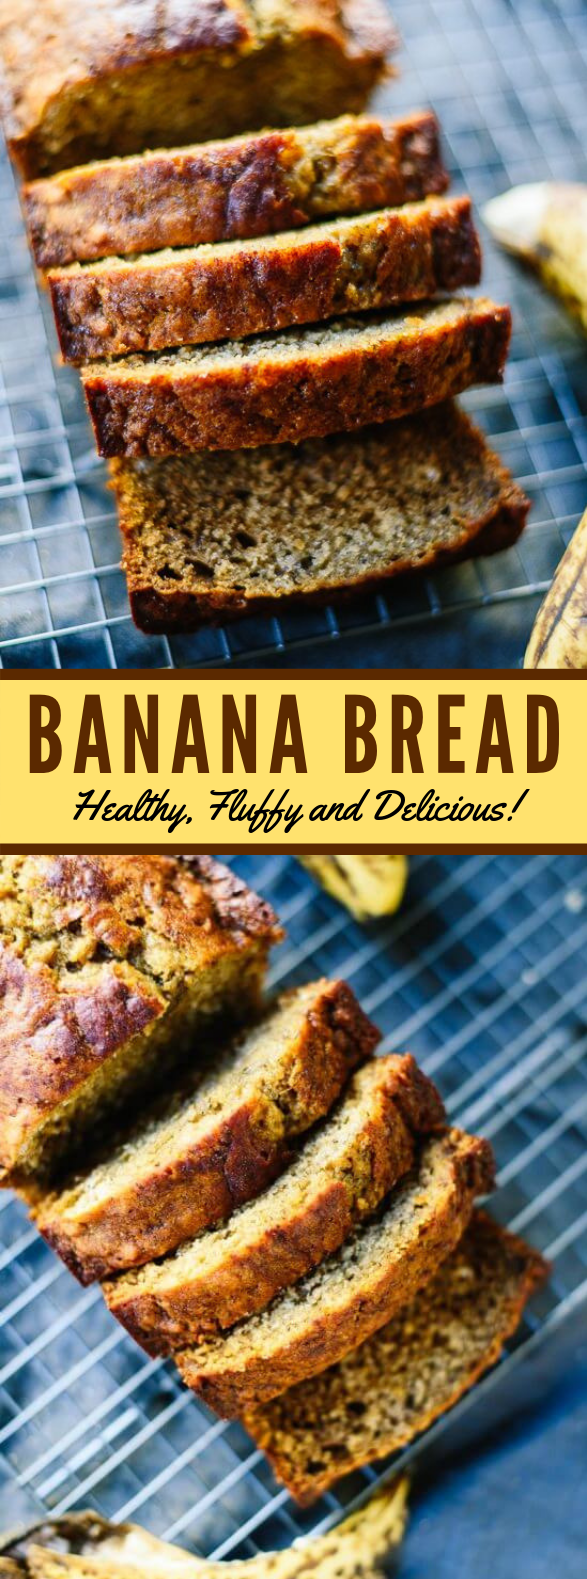 Healthy Banana Bread! #healthydiet #breakfast